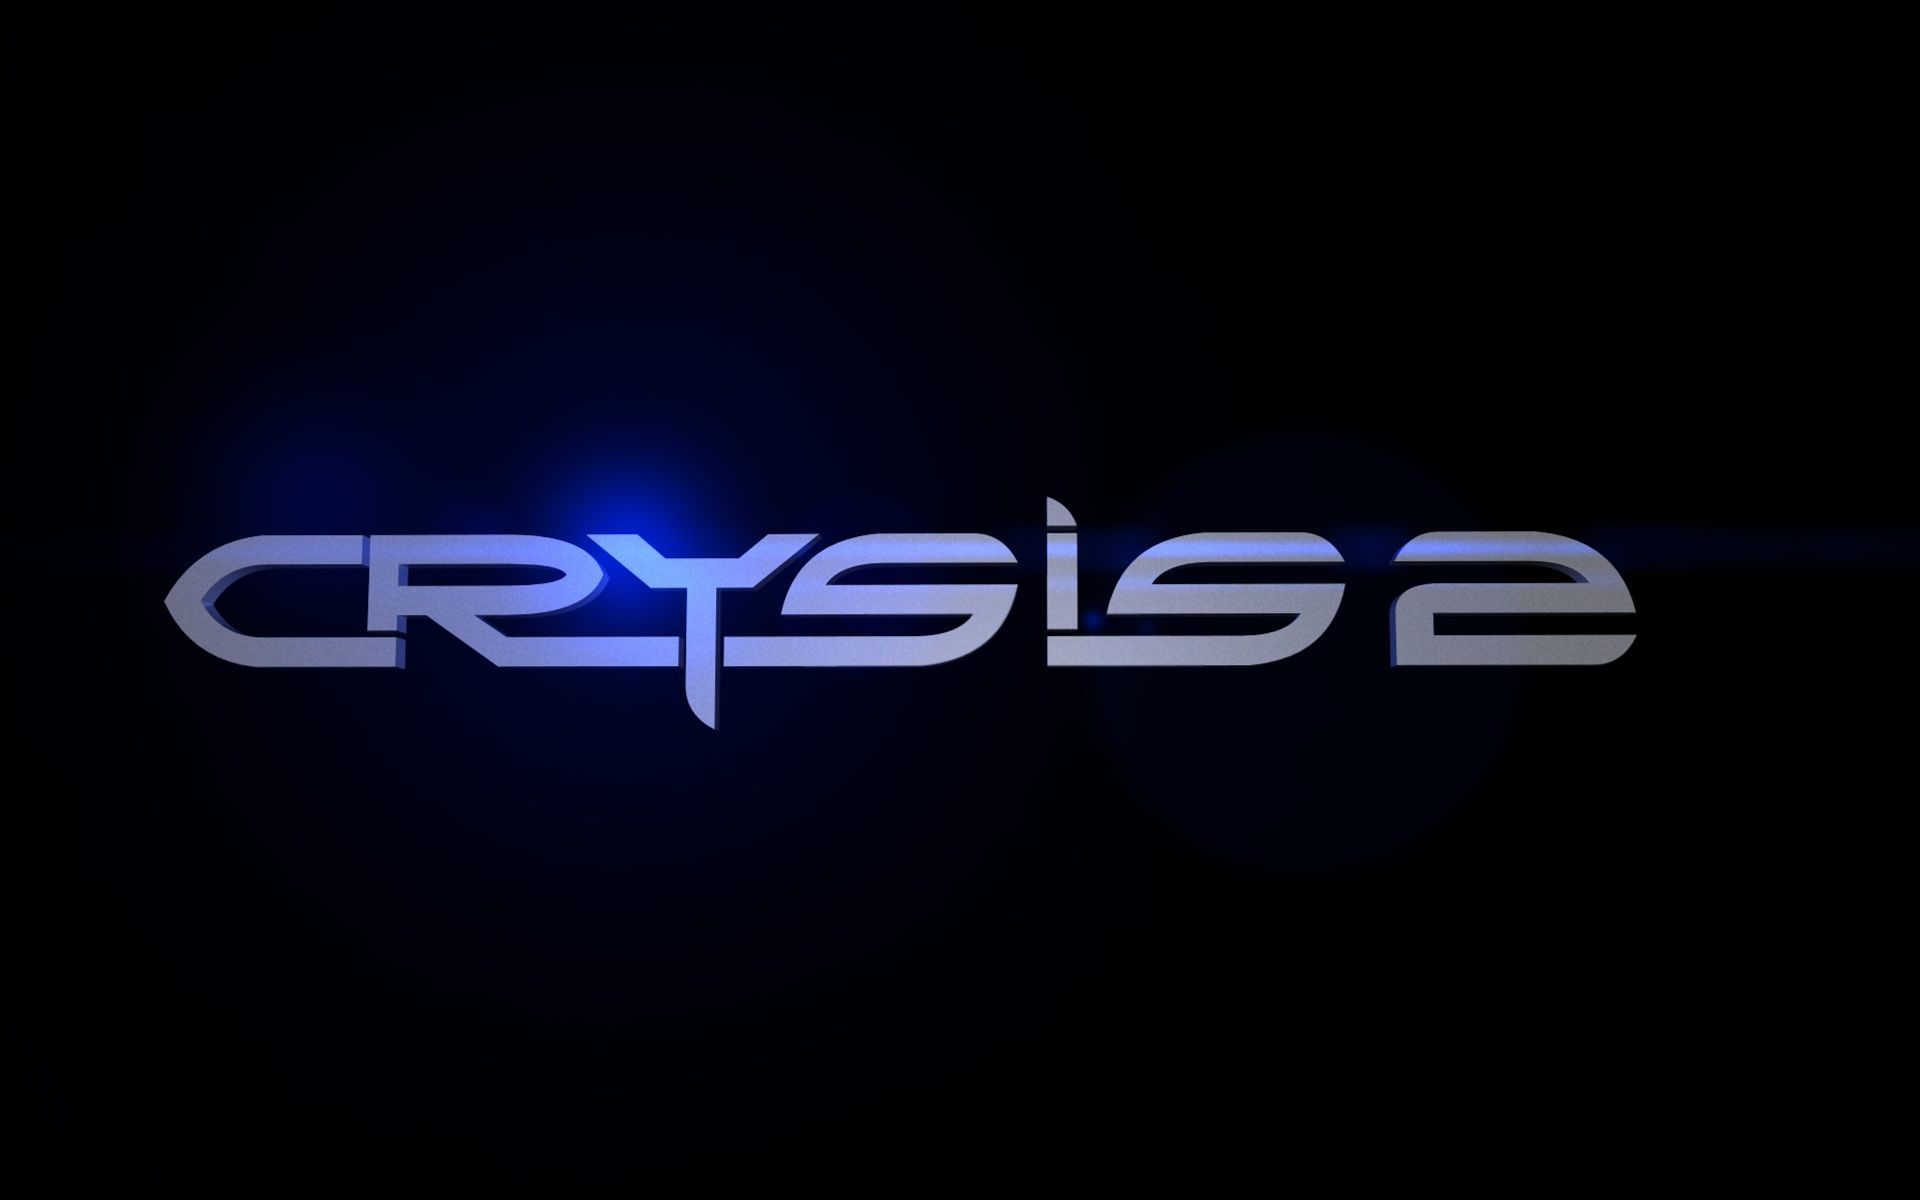 Crysis 2 Xbox LIVE Avatar Gear Preview